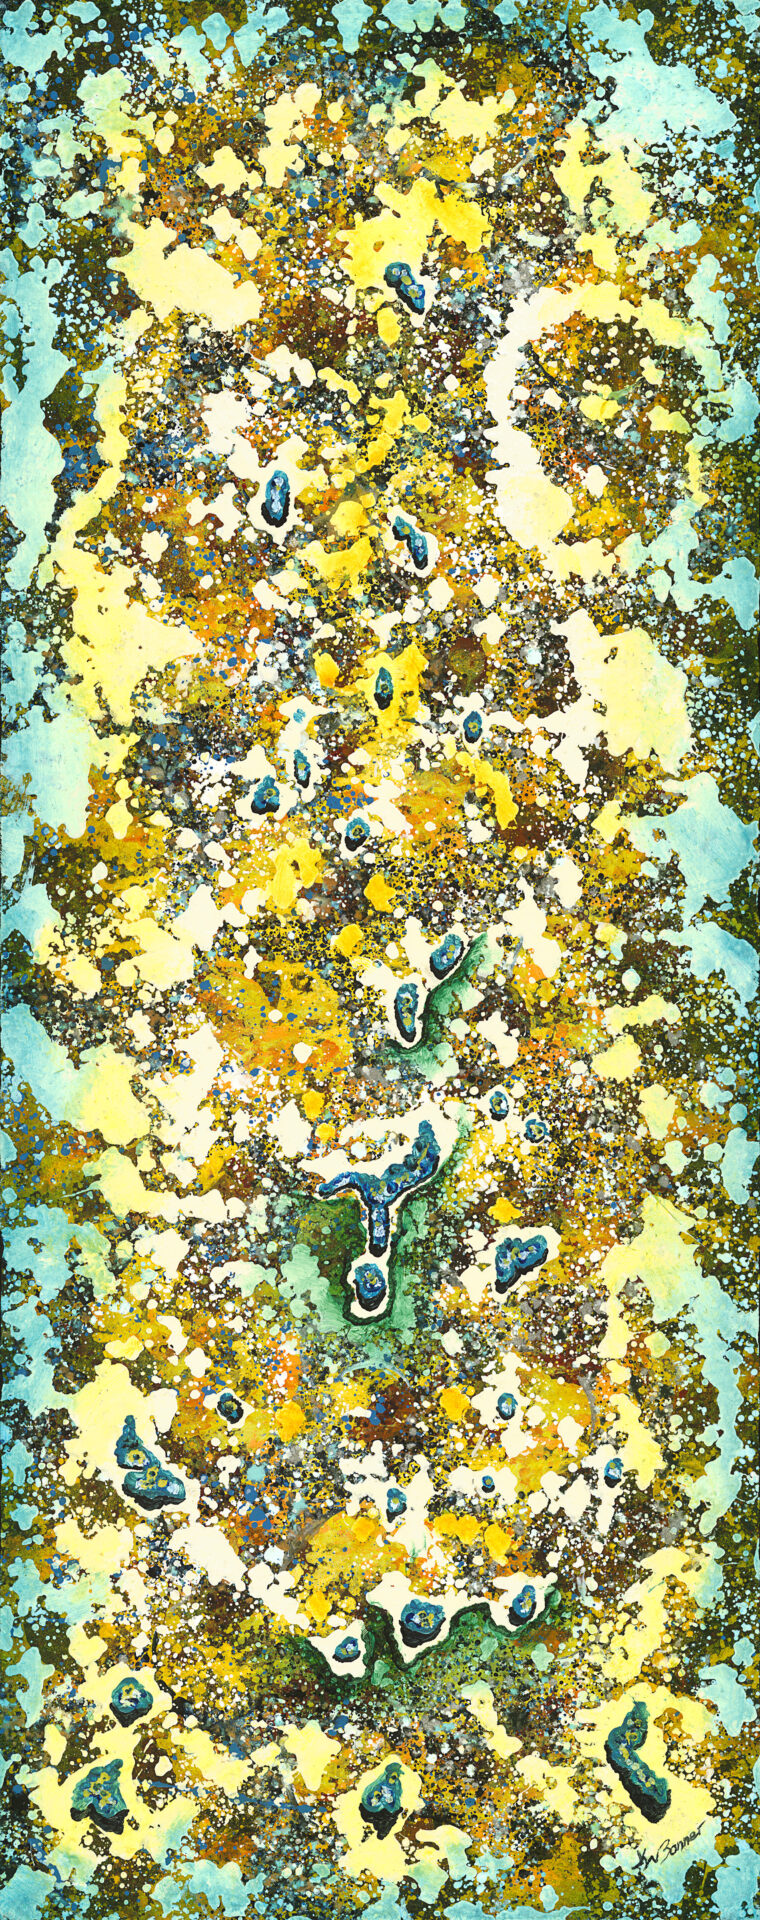 Turquoise trail | Abstract | Ken Bonner original oil painting | Santa Fe New Mexico